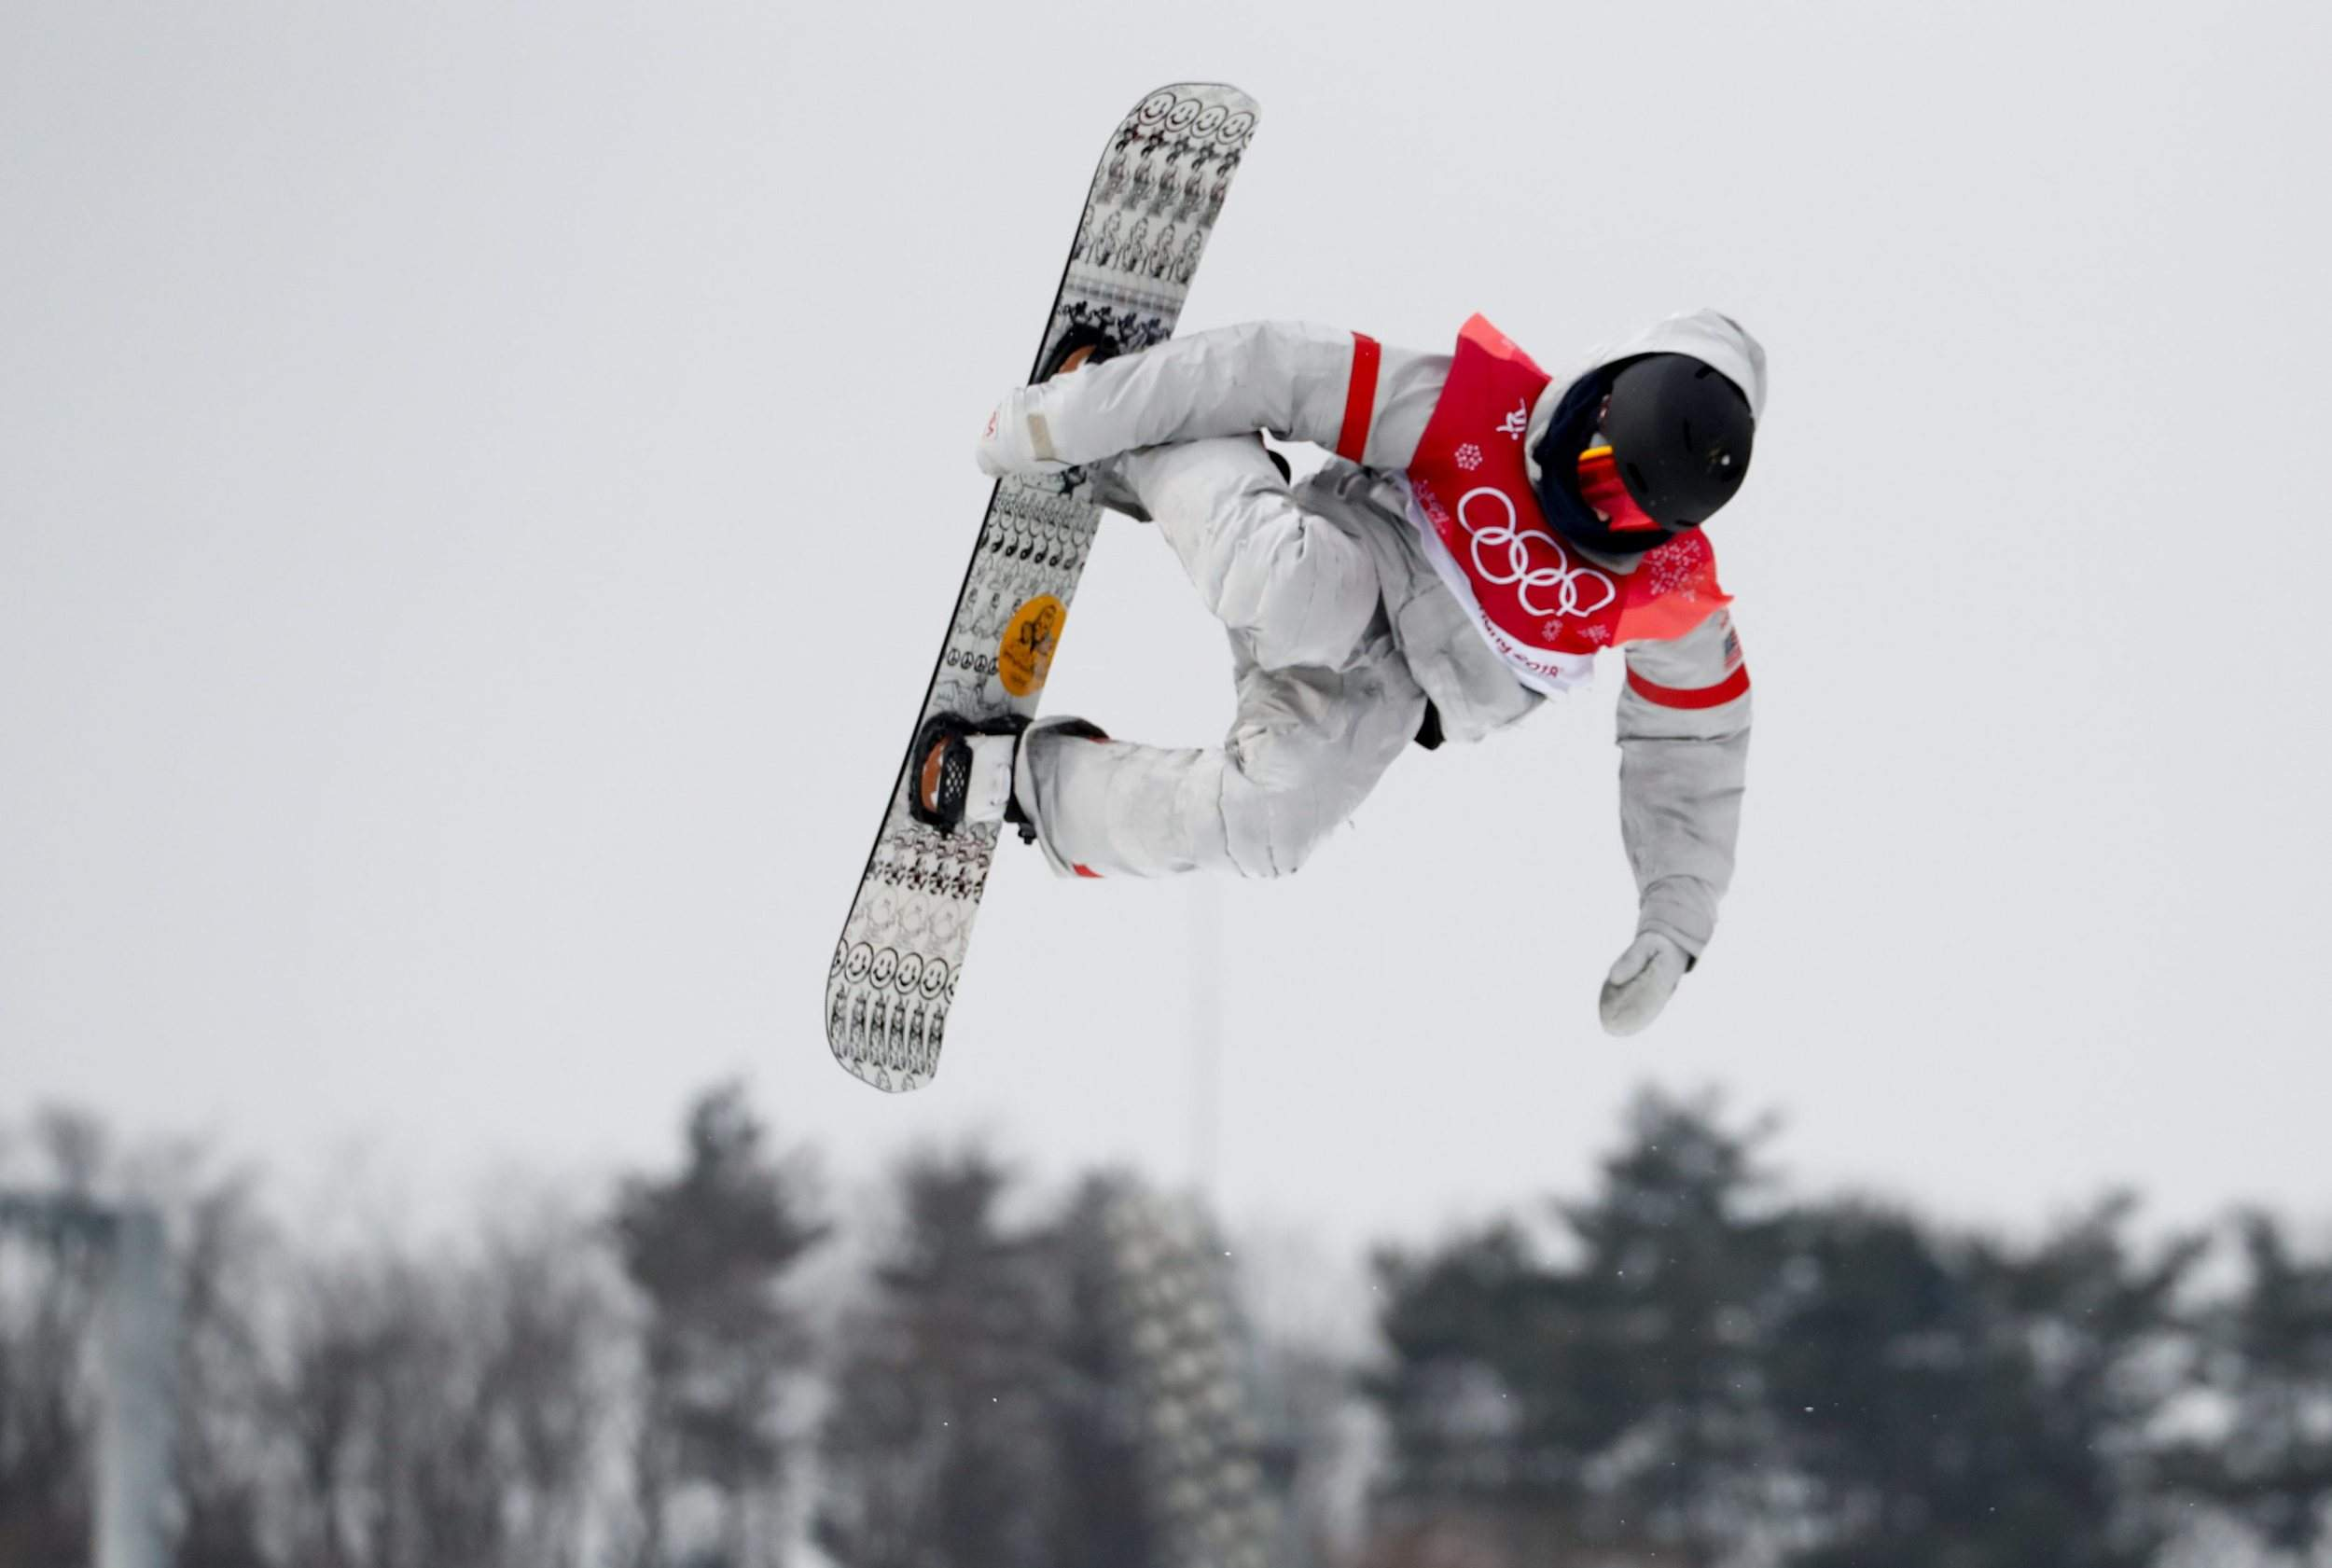 c18a868bc126 Kyle Mack of the United States jumps during the men s Big Air snowboard  competition Saturday at the 2018 Winter Olympics in Pyeongchang